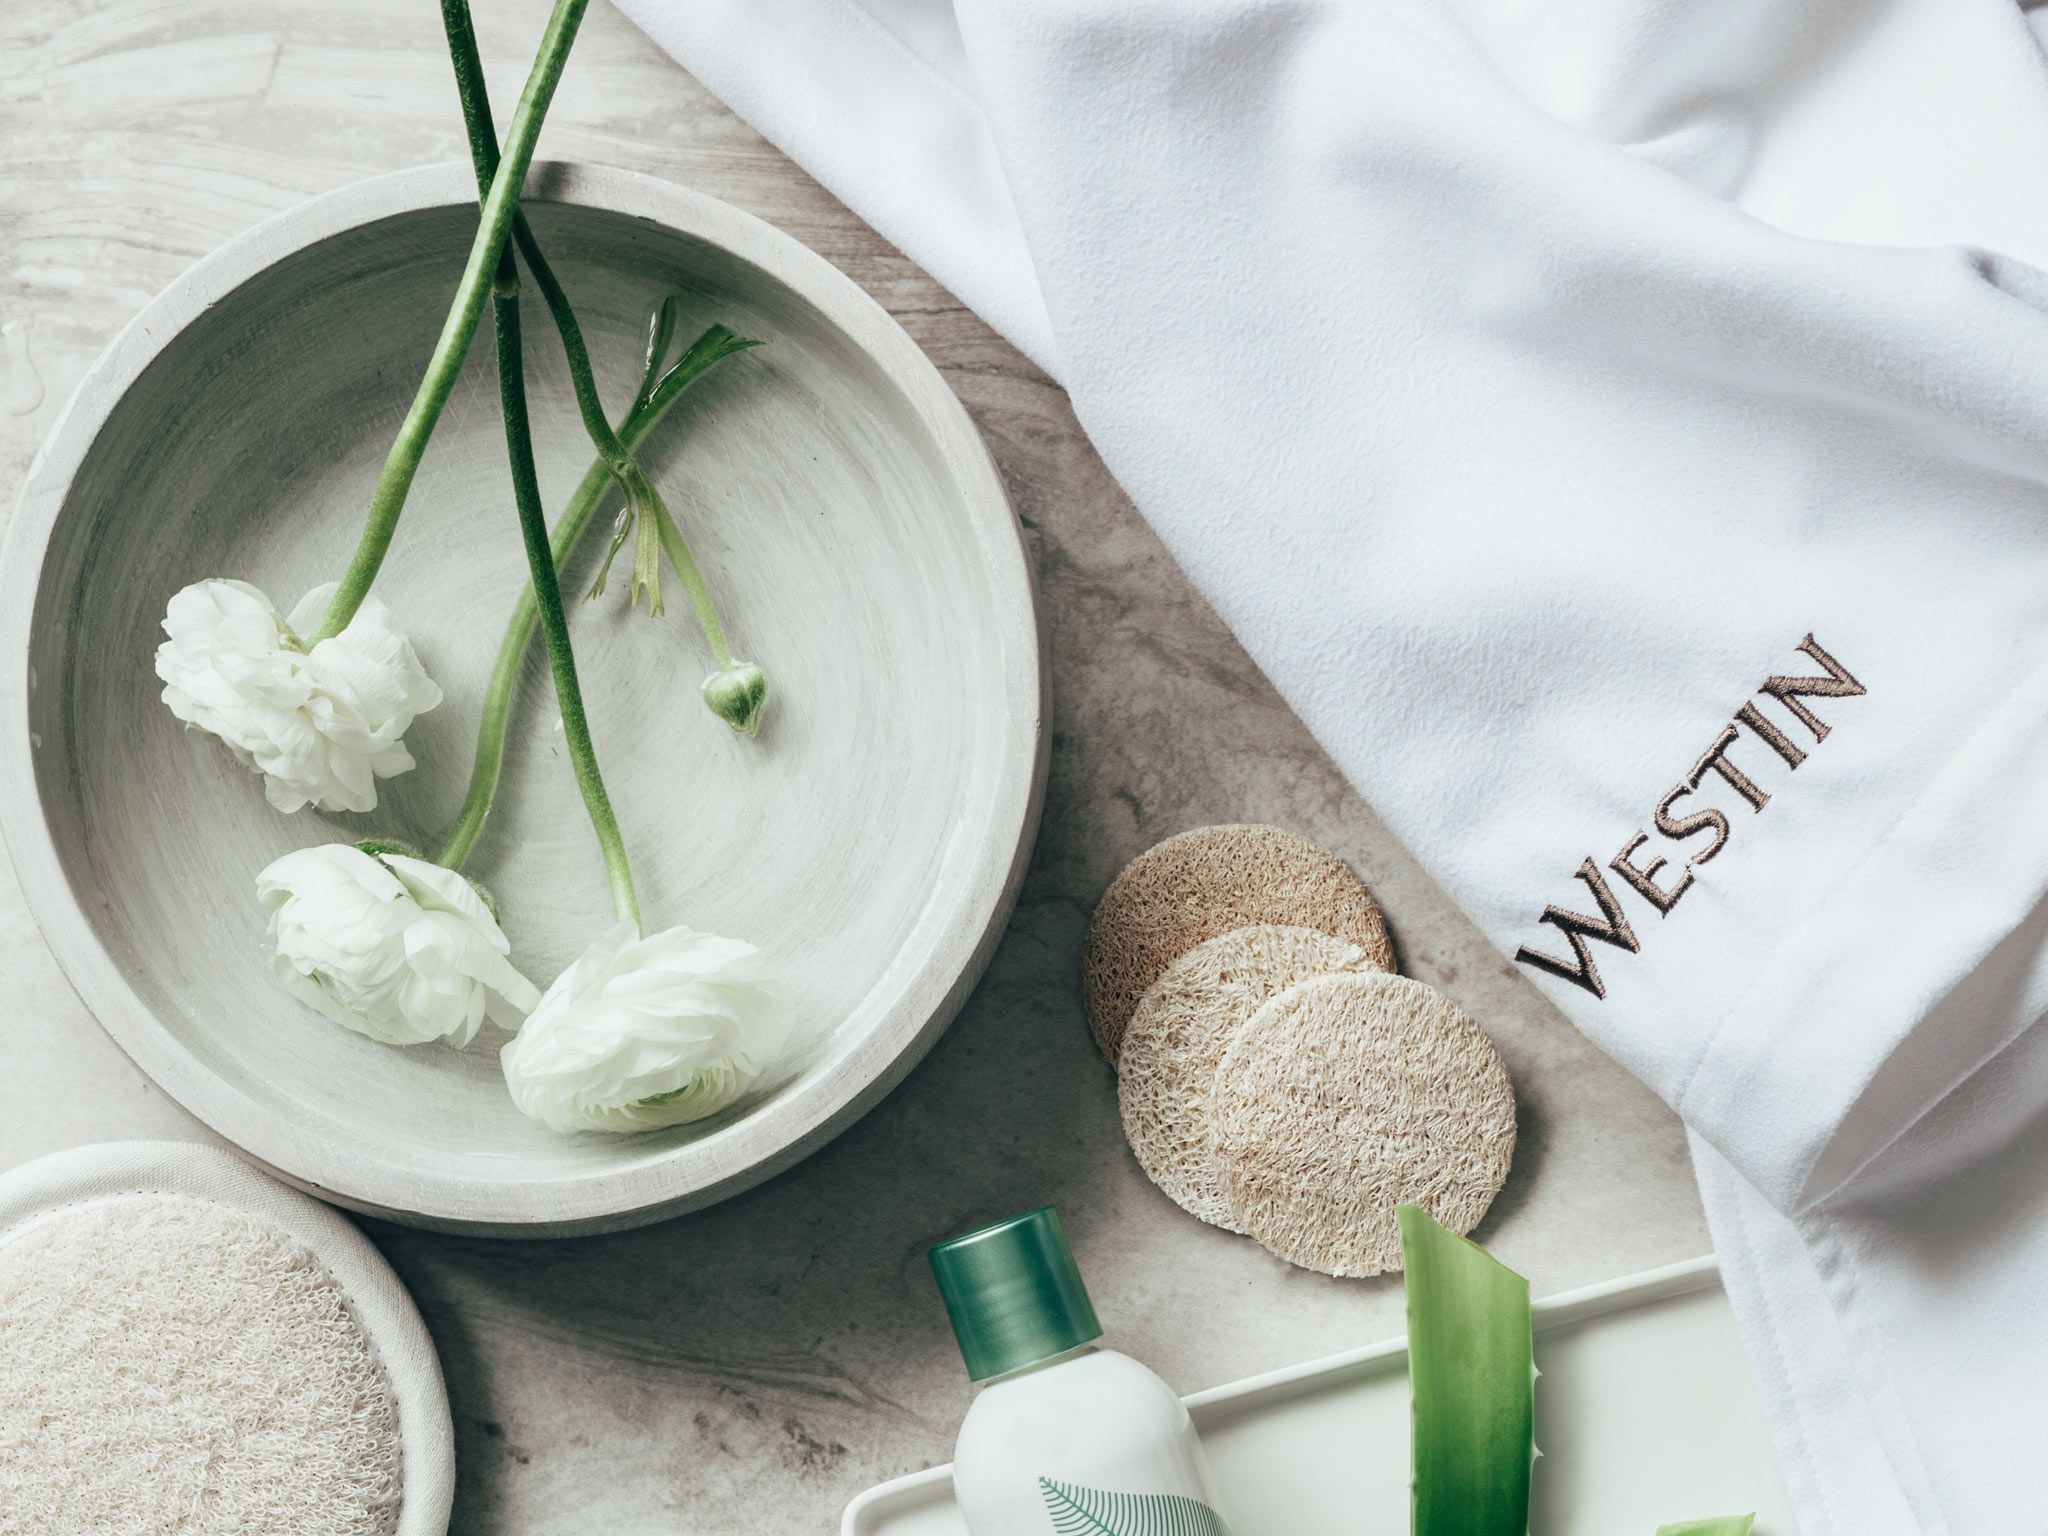 Angebot des Monats im Westin Spa in Berlin im The Westin Grand Wellnesshotel Berlin